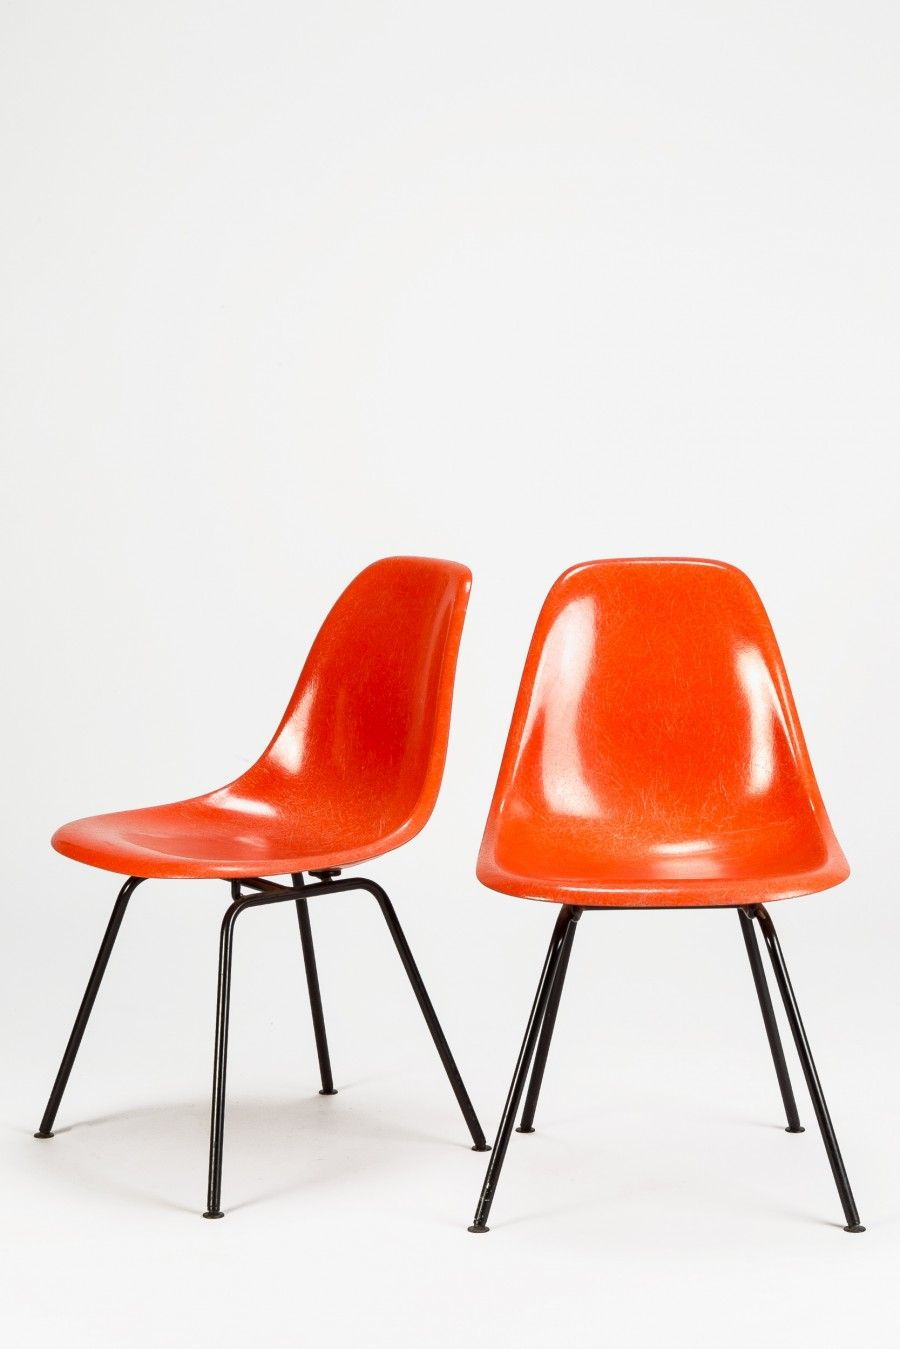 Eames orange shell chairs. @designerwallace